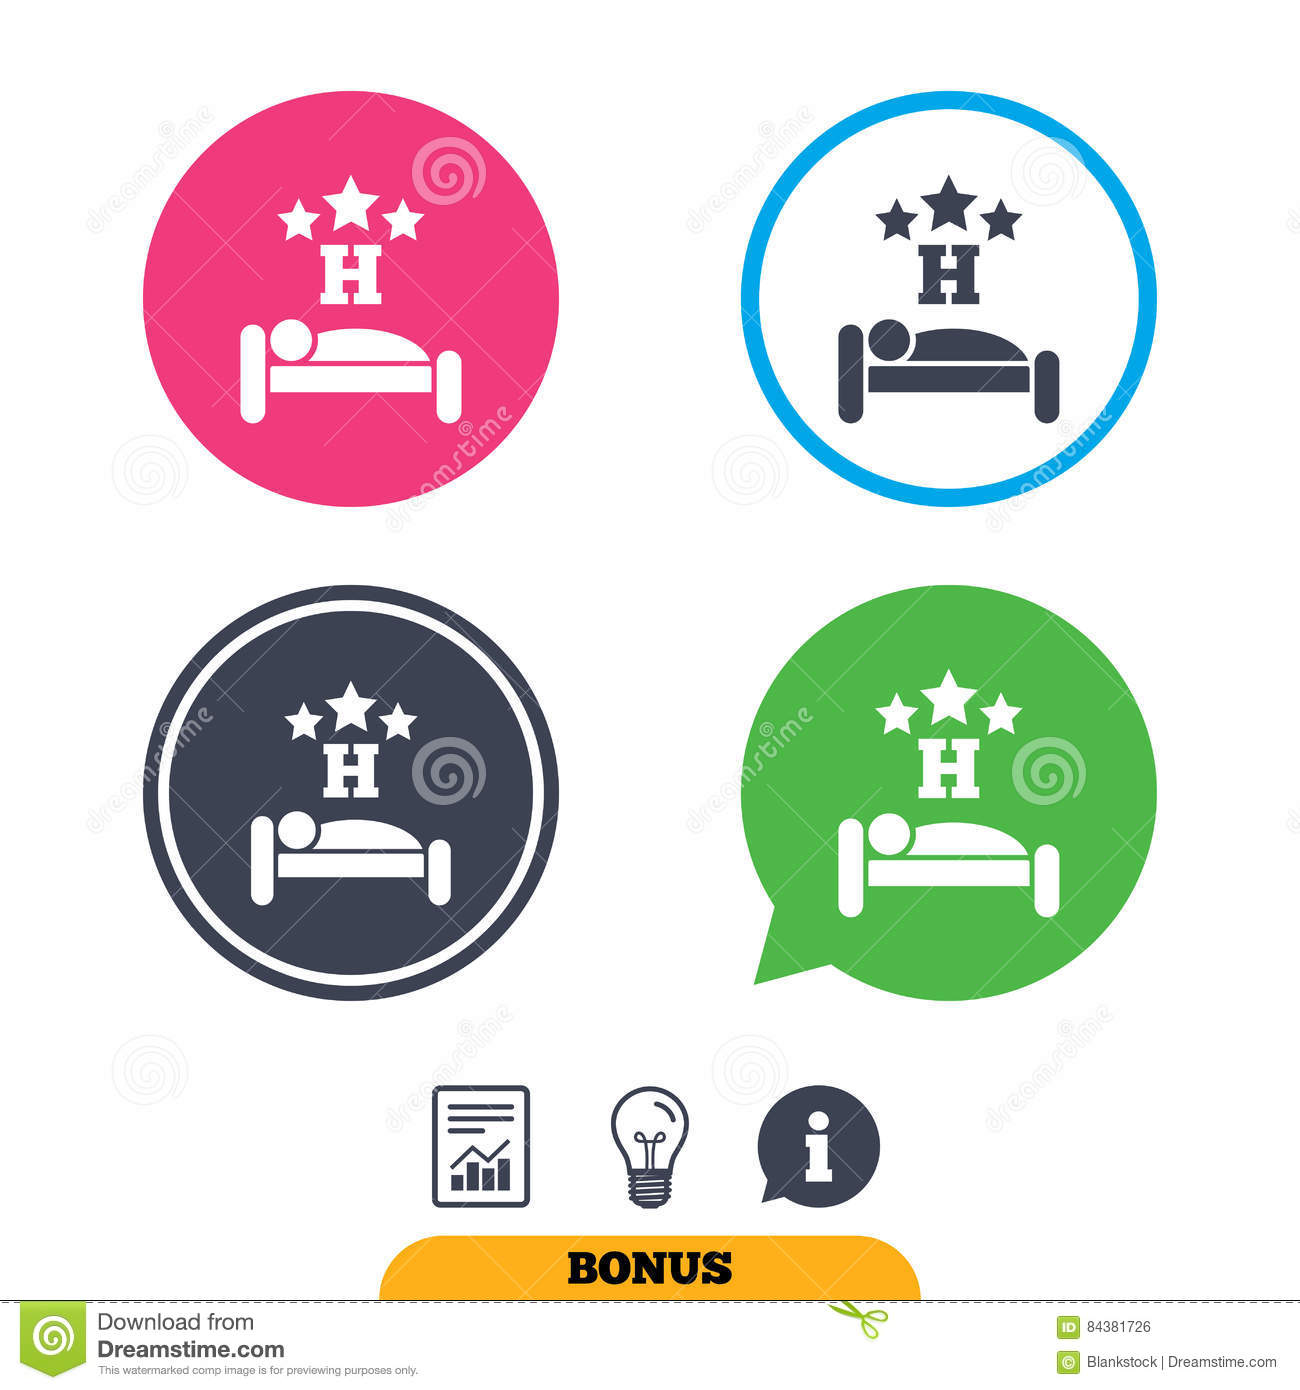 Three Star Hotel Sign Icon Rest Place Stock Vector Illustration